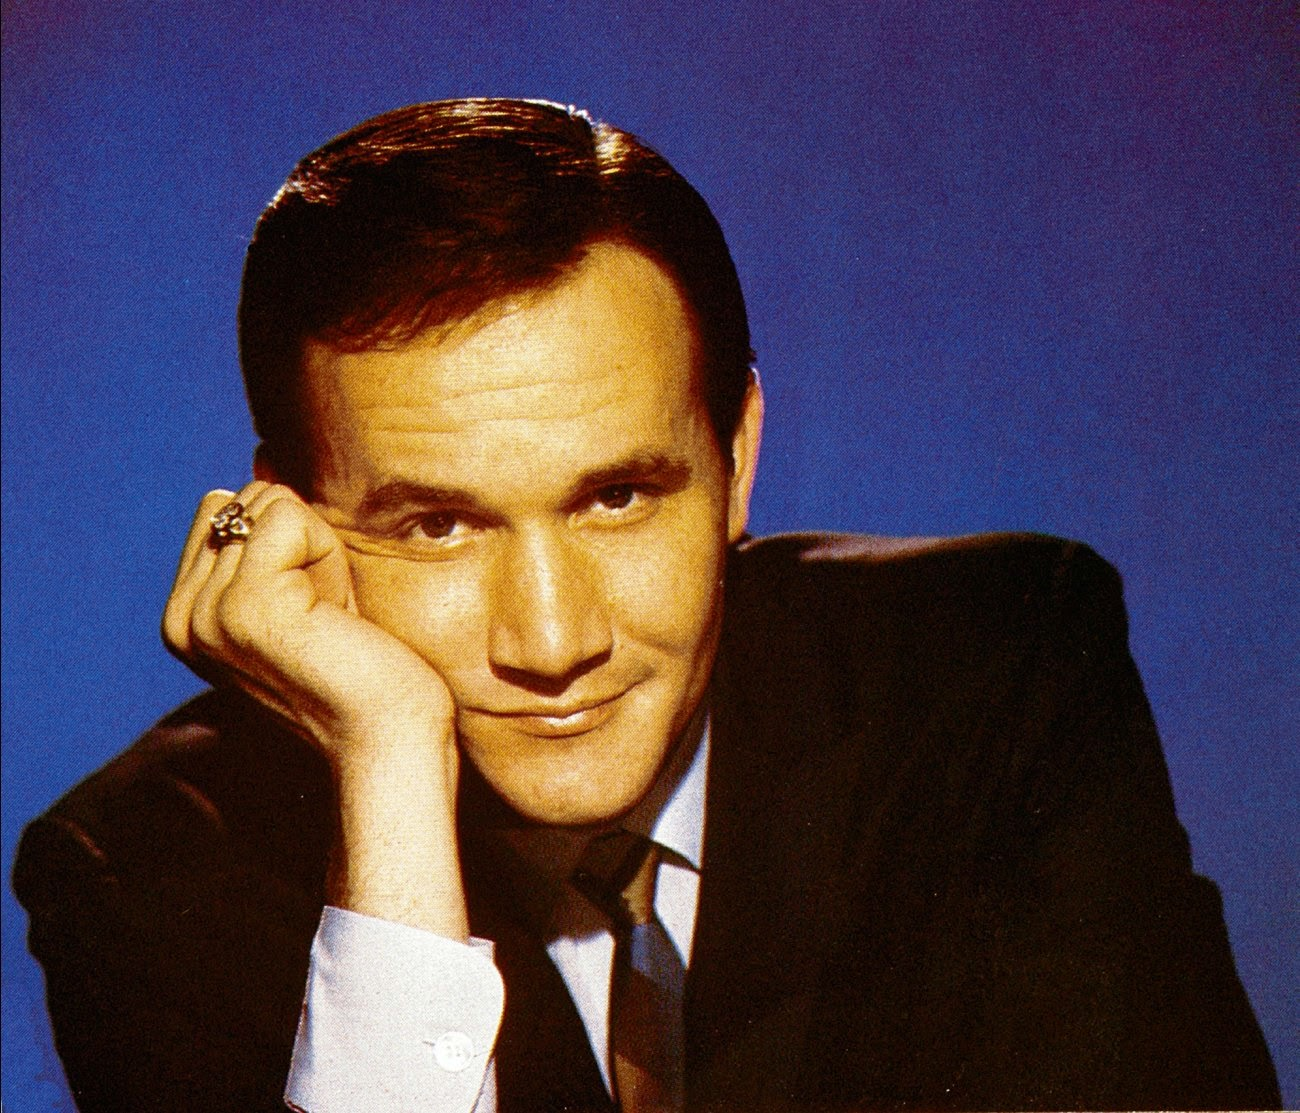 Roger Miller was an American singer, songwriter, musician and actor, best known for his honky-tonk-influenced novelty songs. http://www.jinglejanglejungle.net/2015/01/roger-miller.html